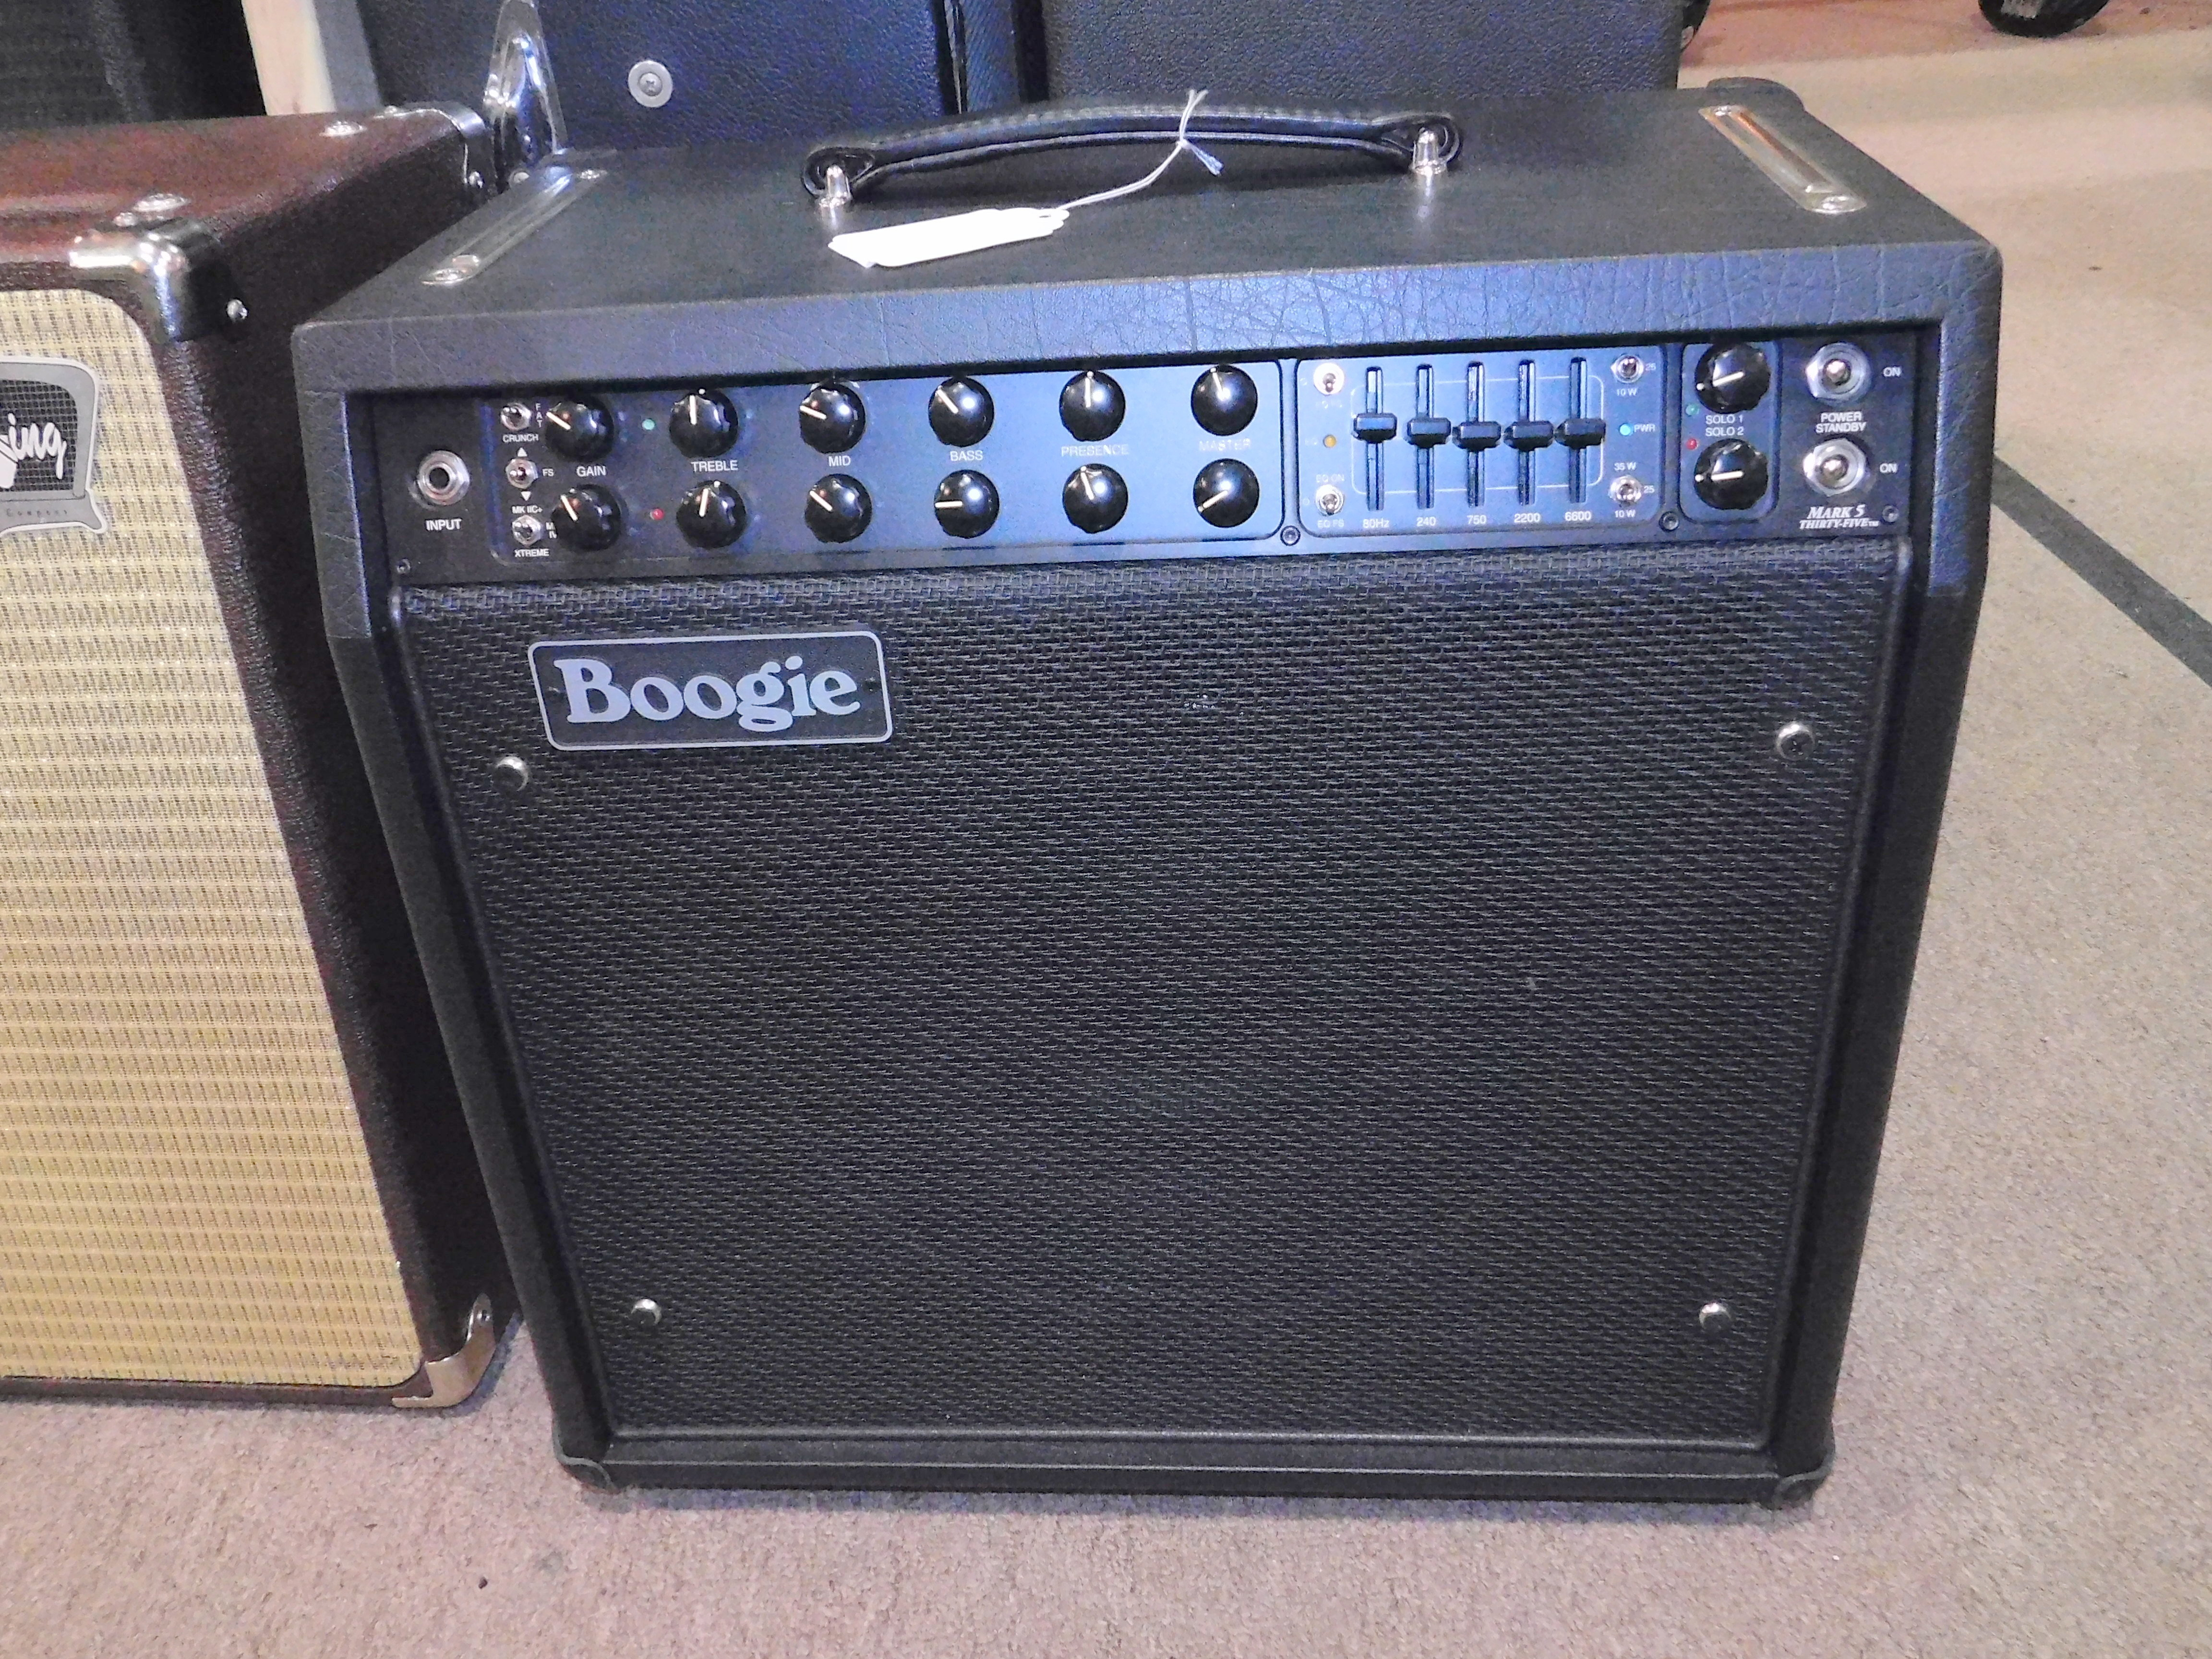 MESA BOOGIE MARK 5 35 Combo w/FOOOTSWITCH